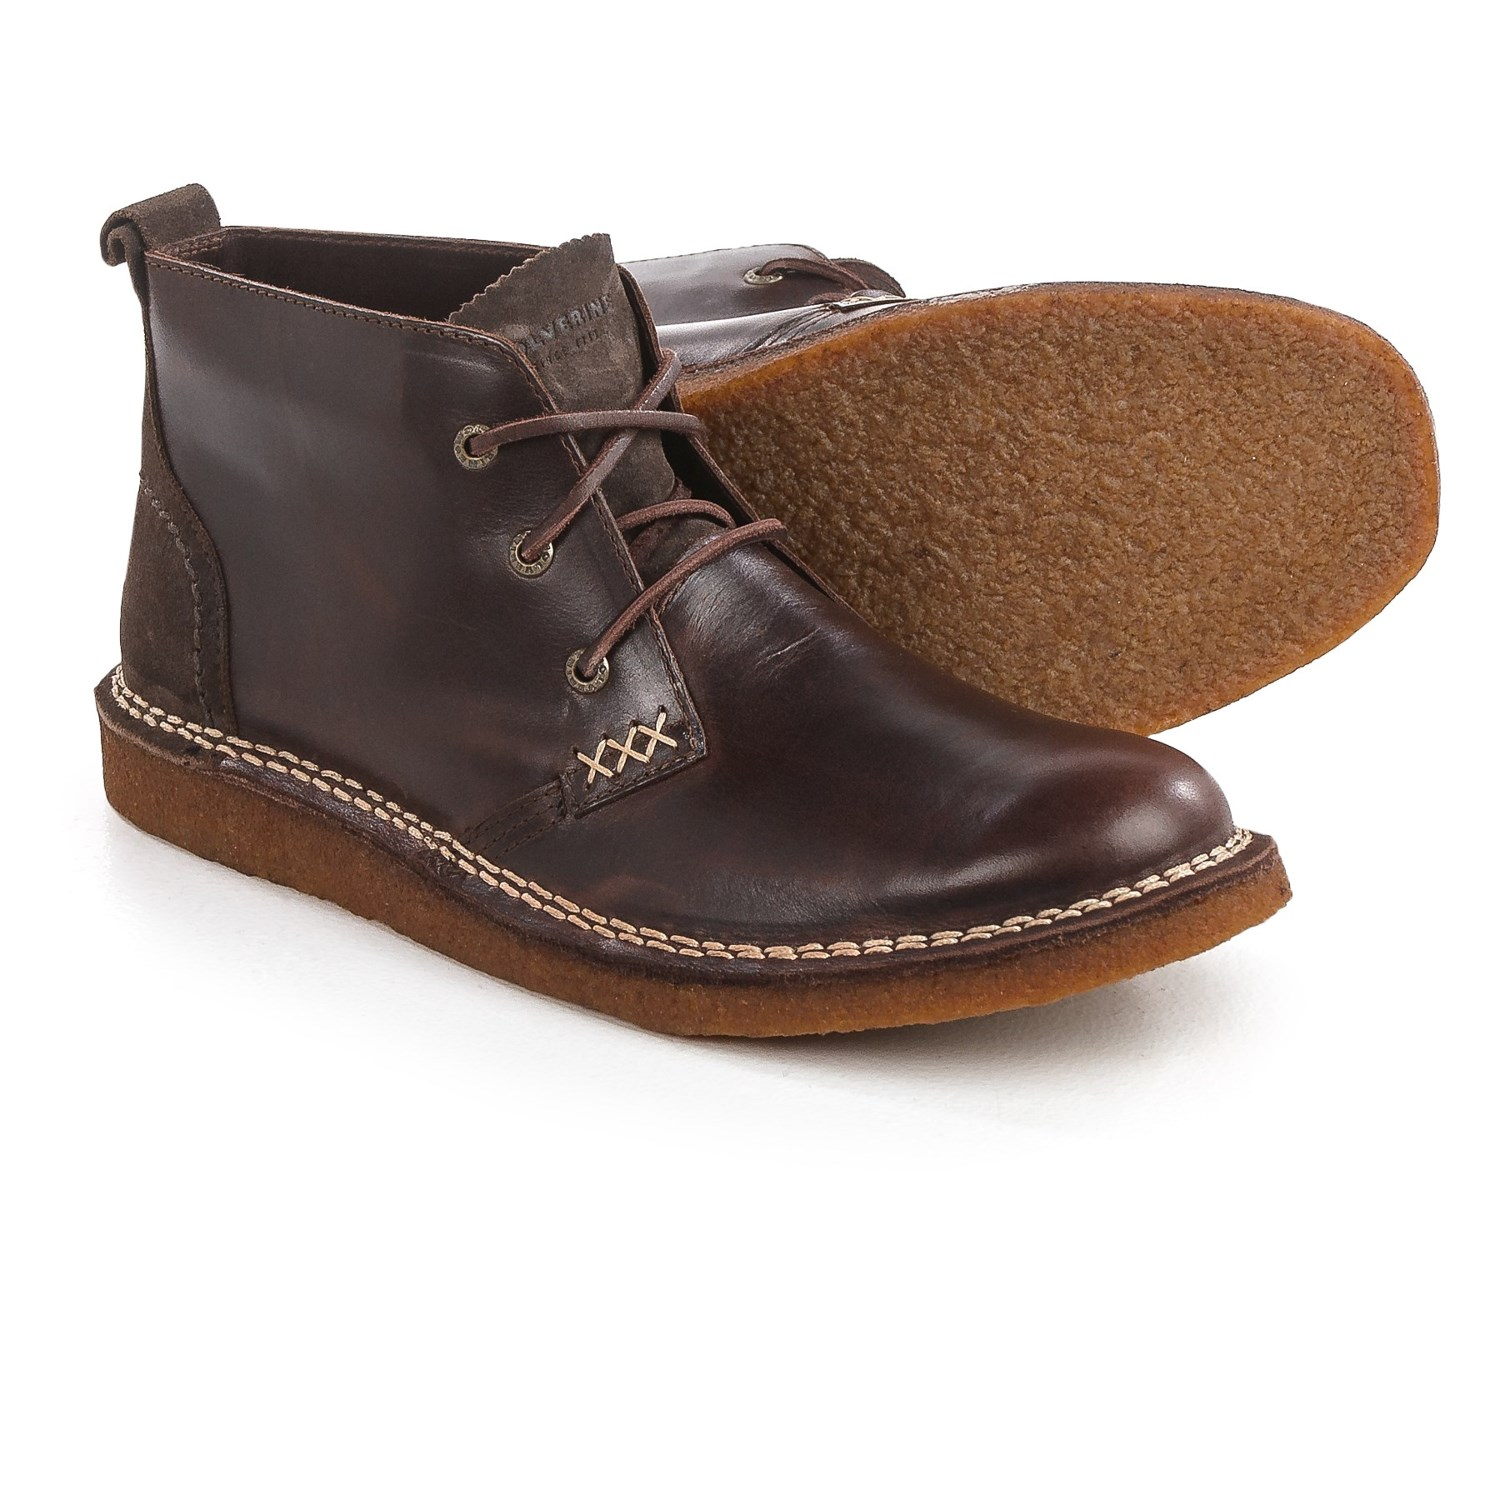 Wolverine Julian Chukka Boots (For Men) - Save 47%